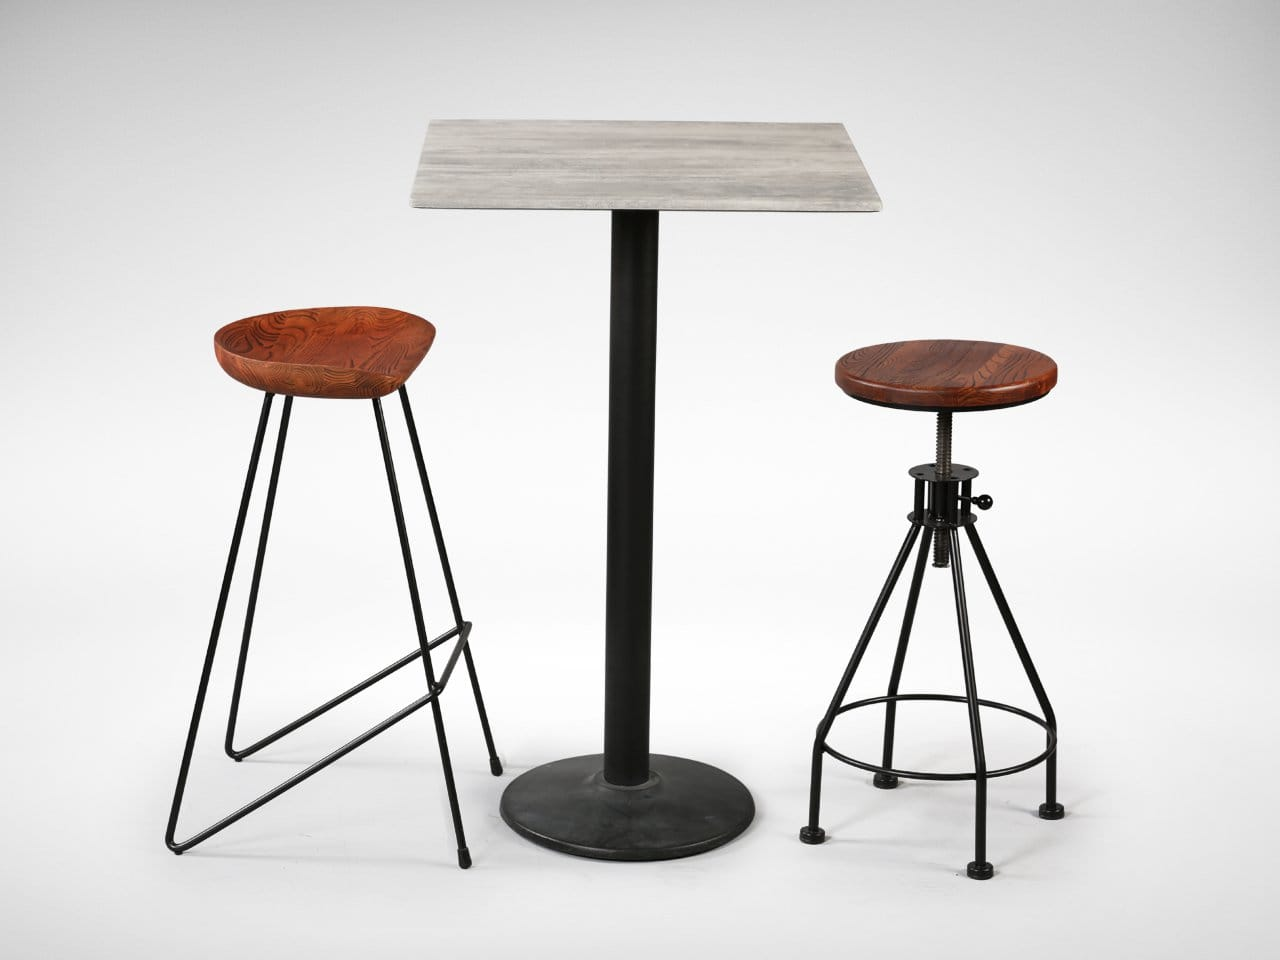 [Isotop Table top - Cement, Cosson Bar Leg Dia430 Round Table Base, Venus Barstool & Afro Barstool]<br />